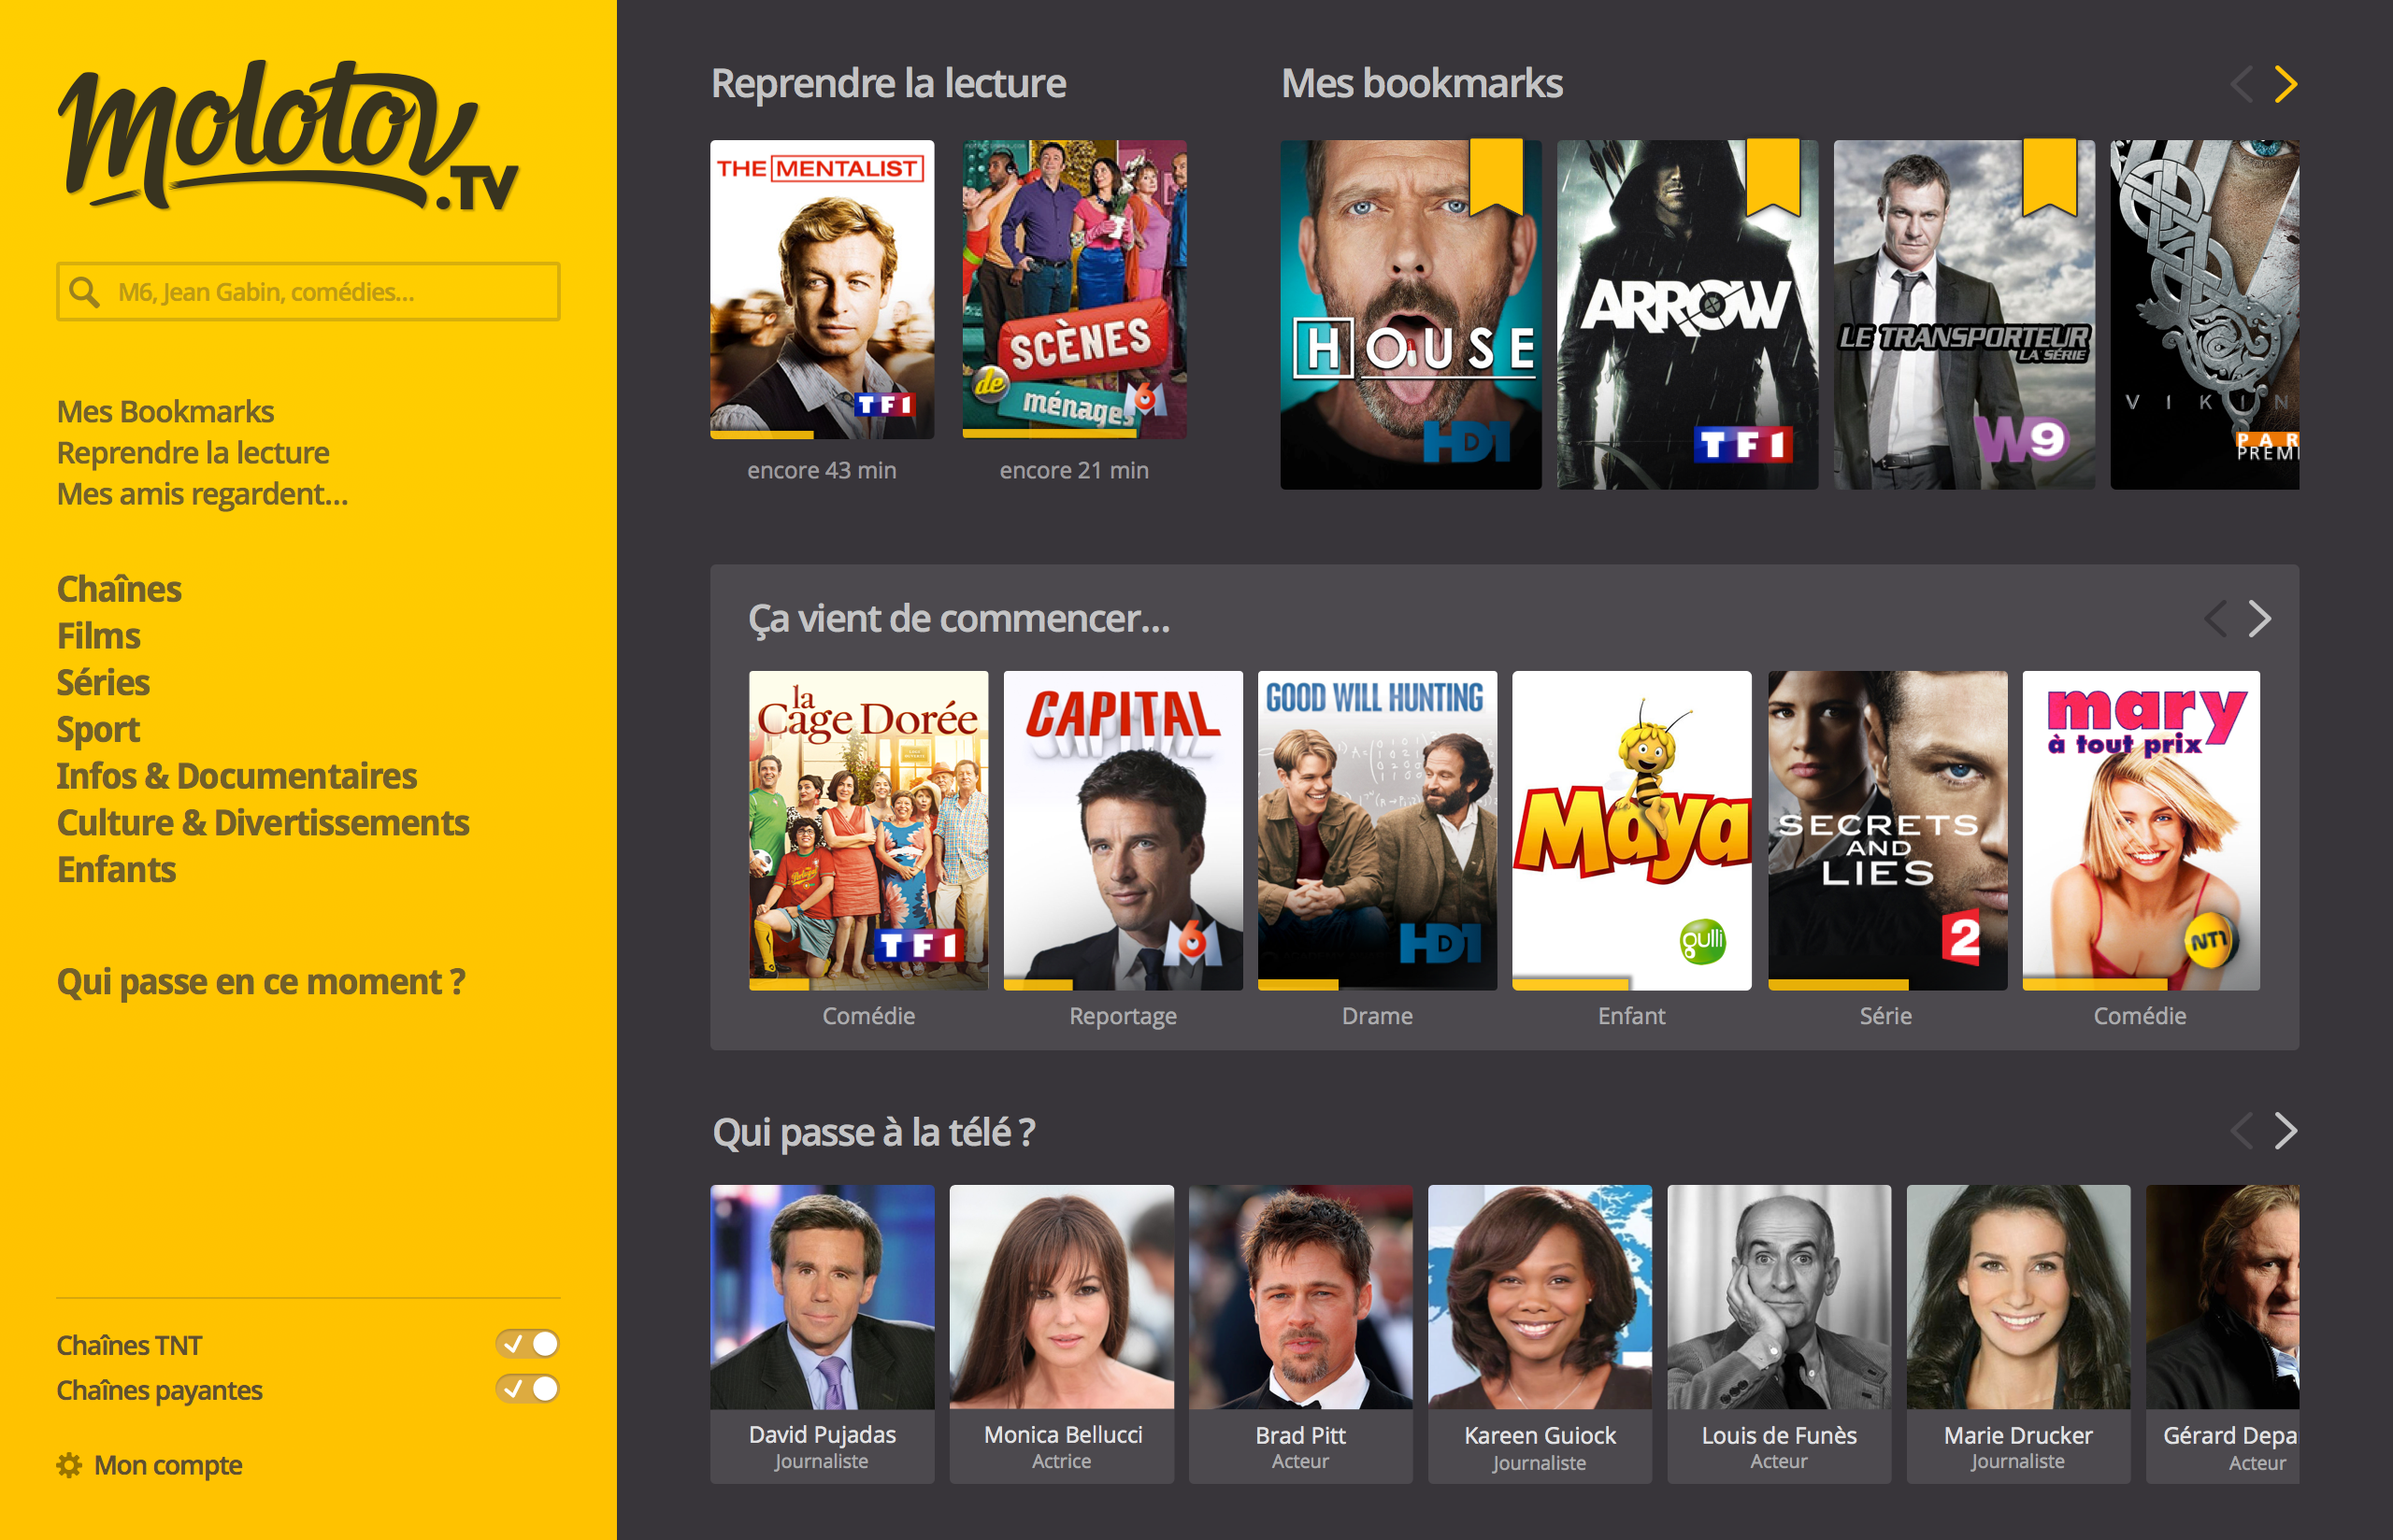 Molotov Signs Deals With LG And Samsung To Come To Your Smart TV